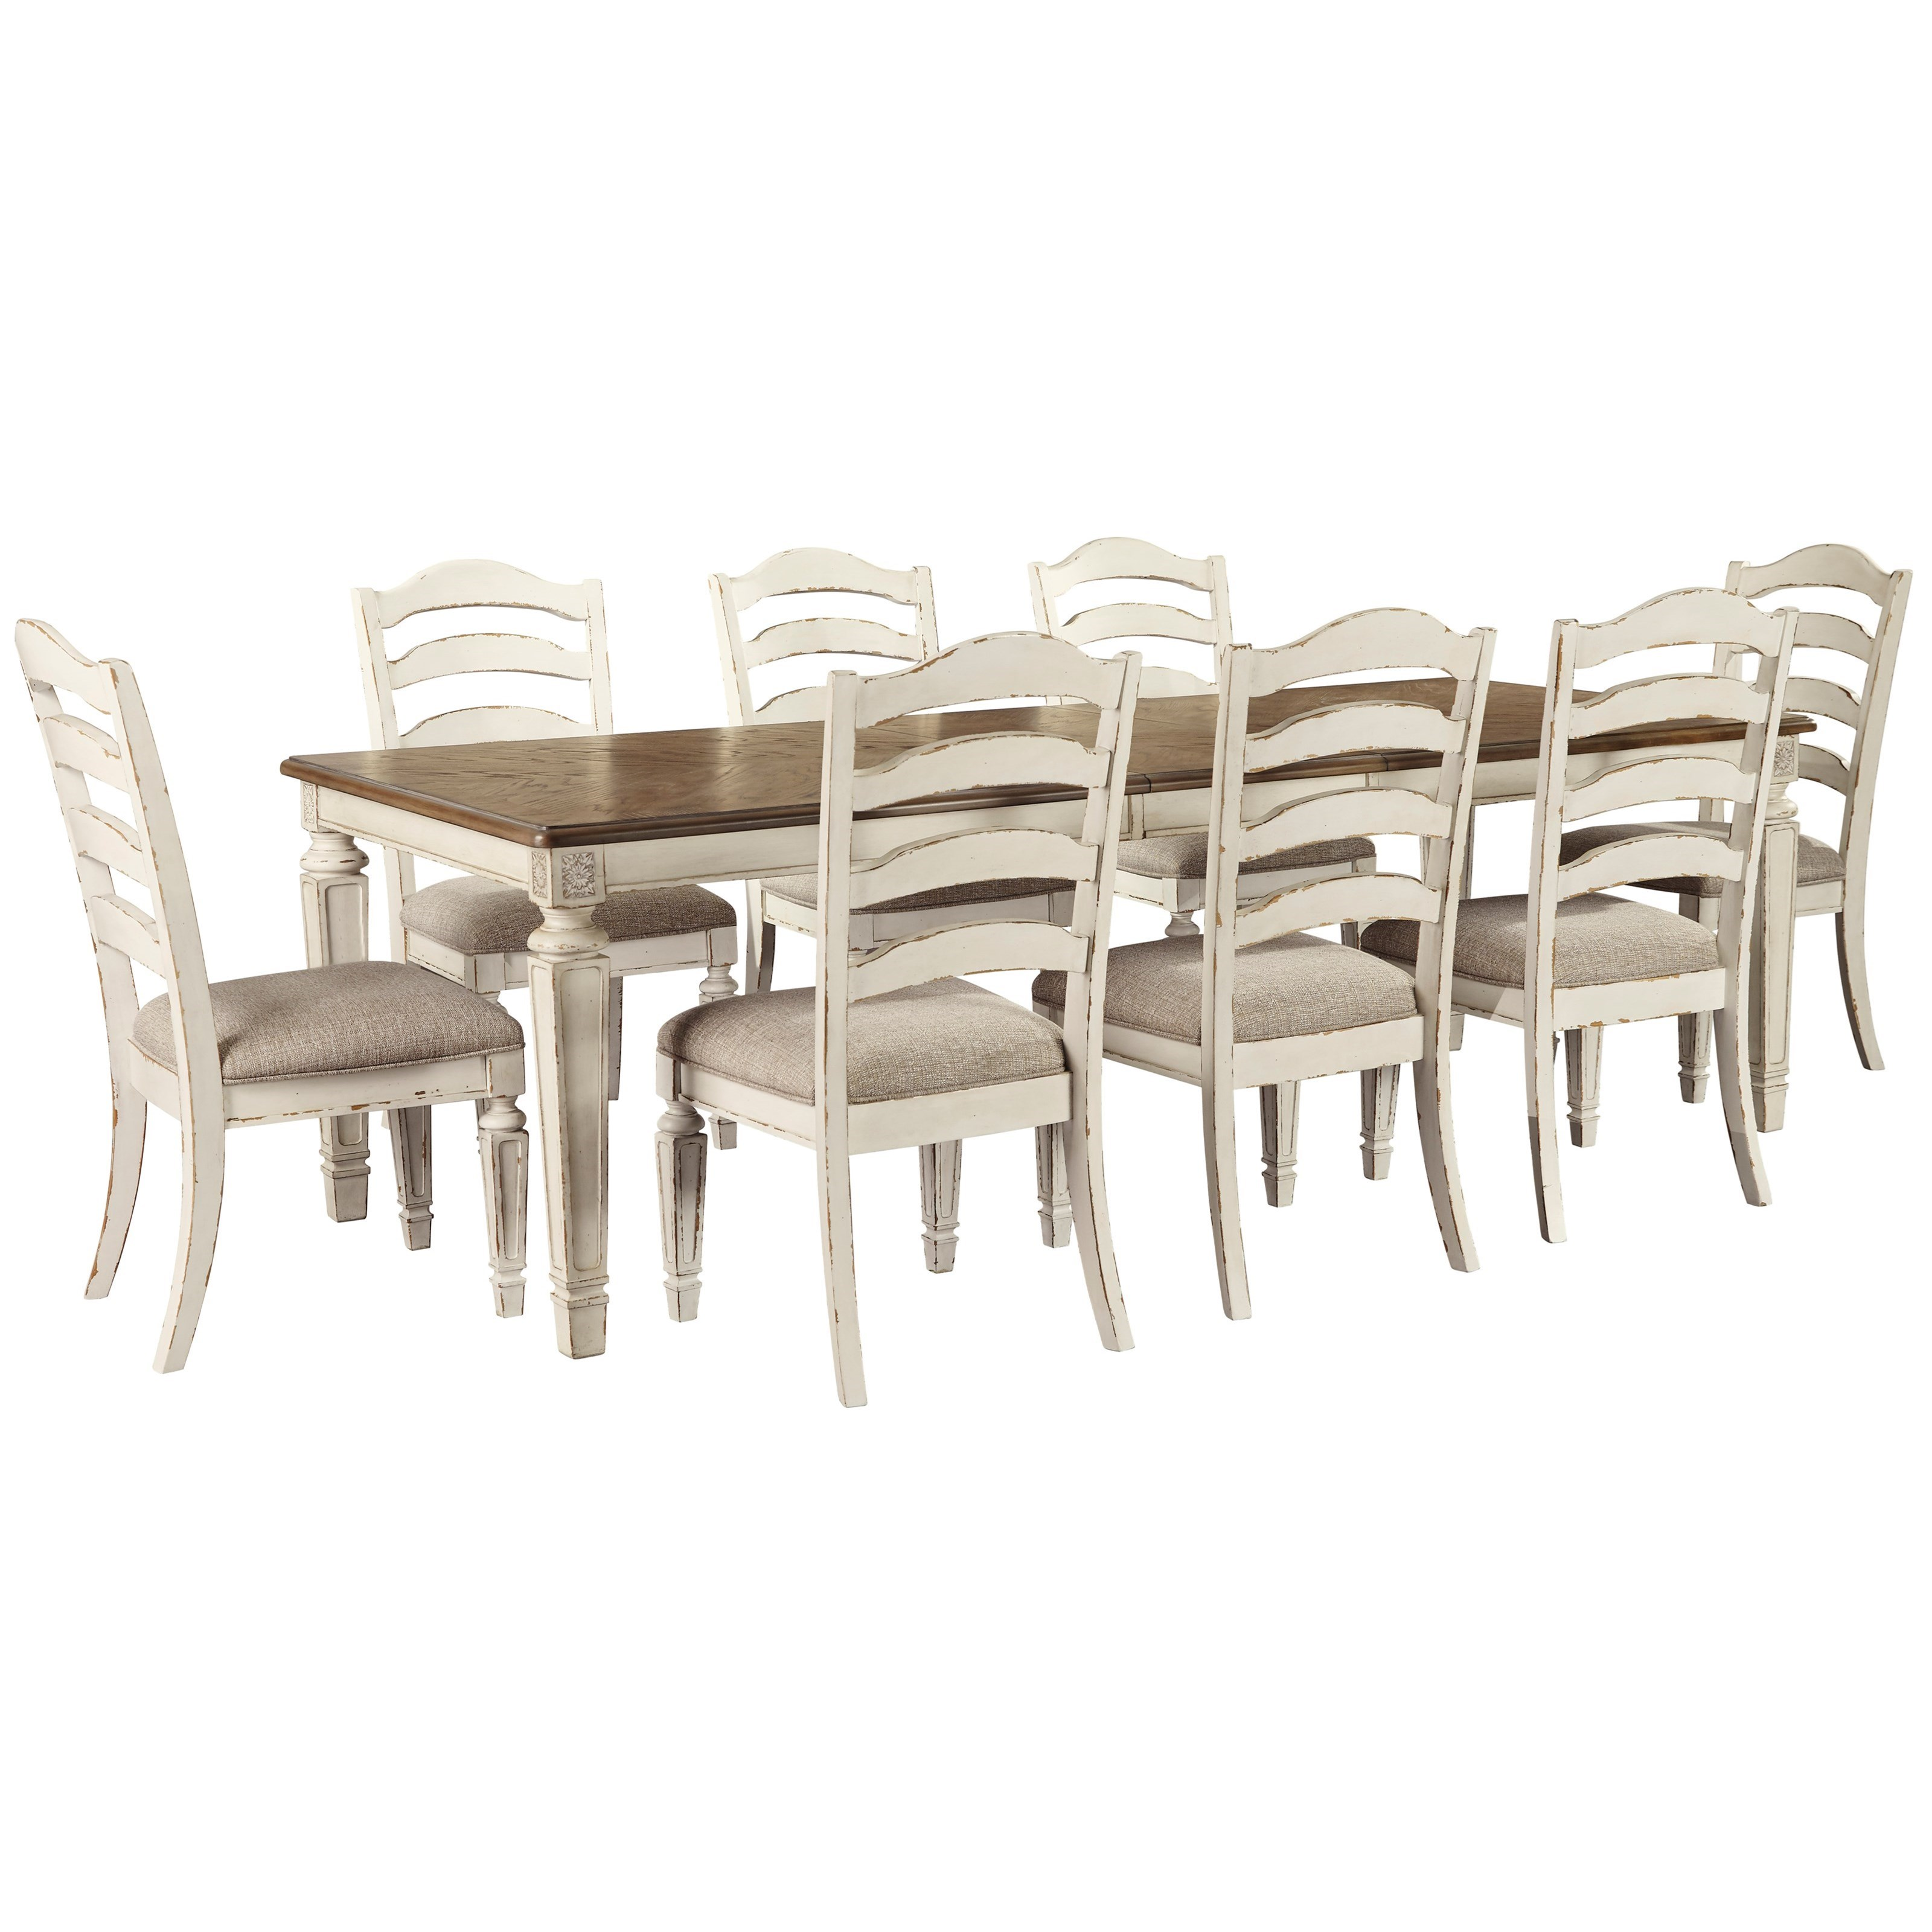 Realyn 9 Piece Dining Set by Signature Design by Ashley at HomeWorld Furniture